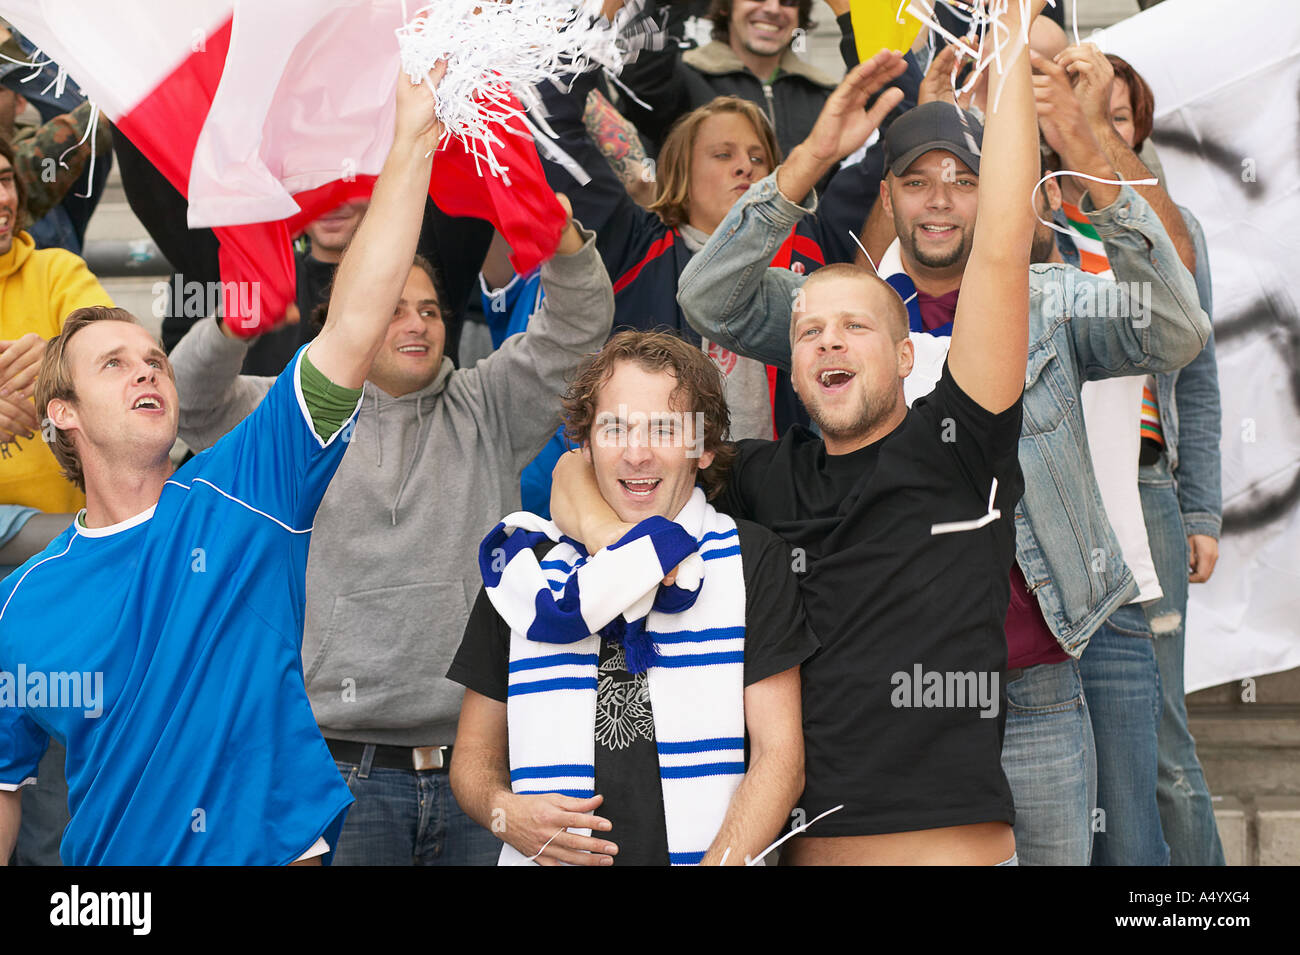 Football supporters cheering - Stock Image